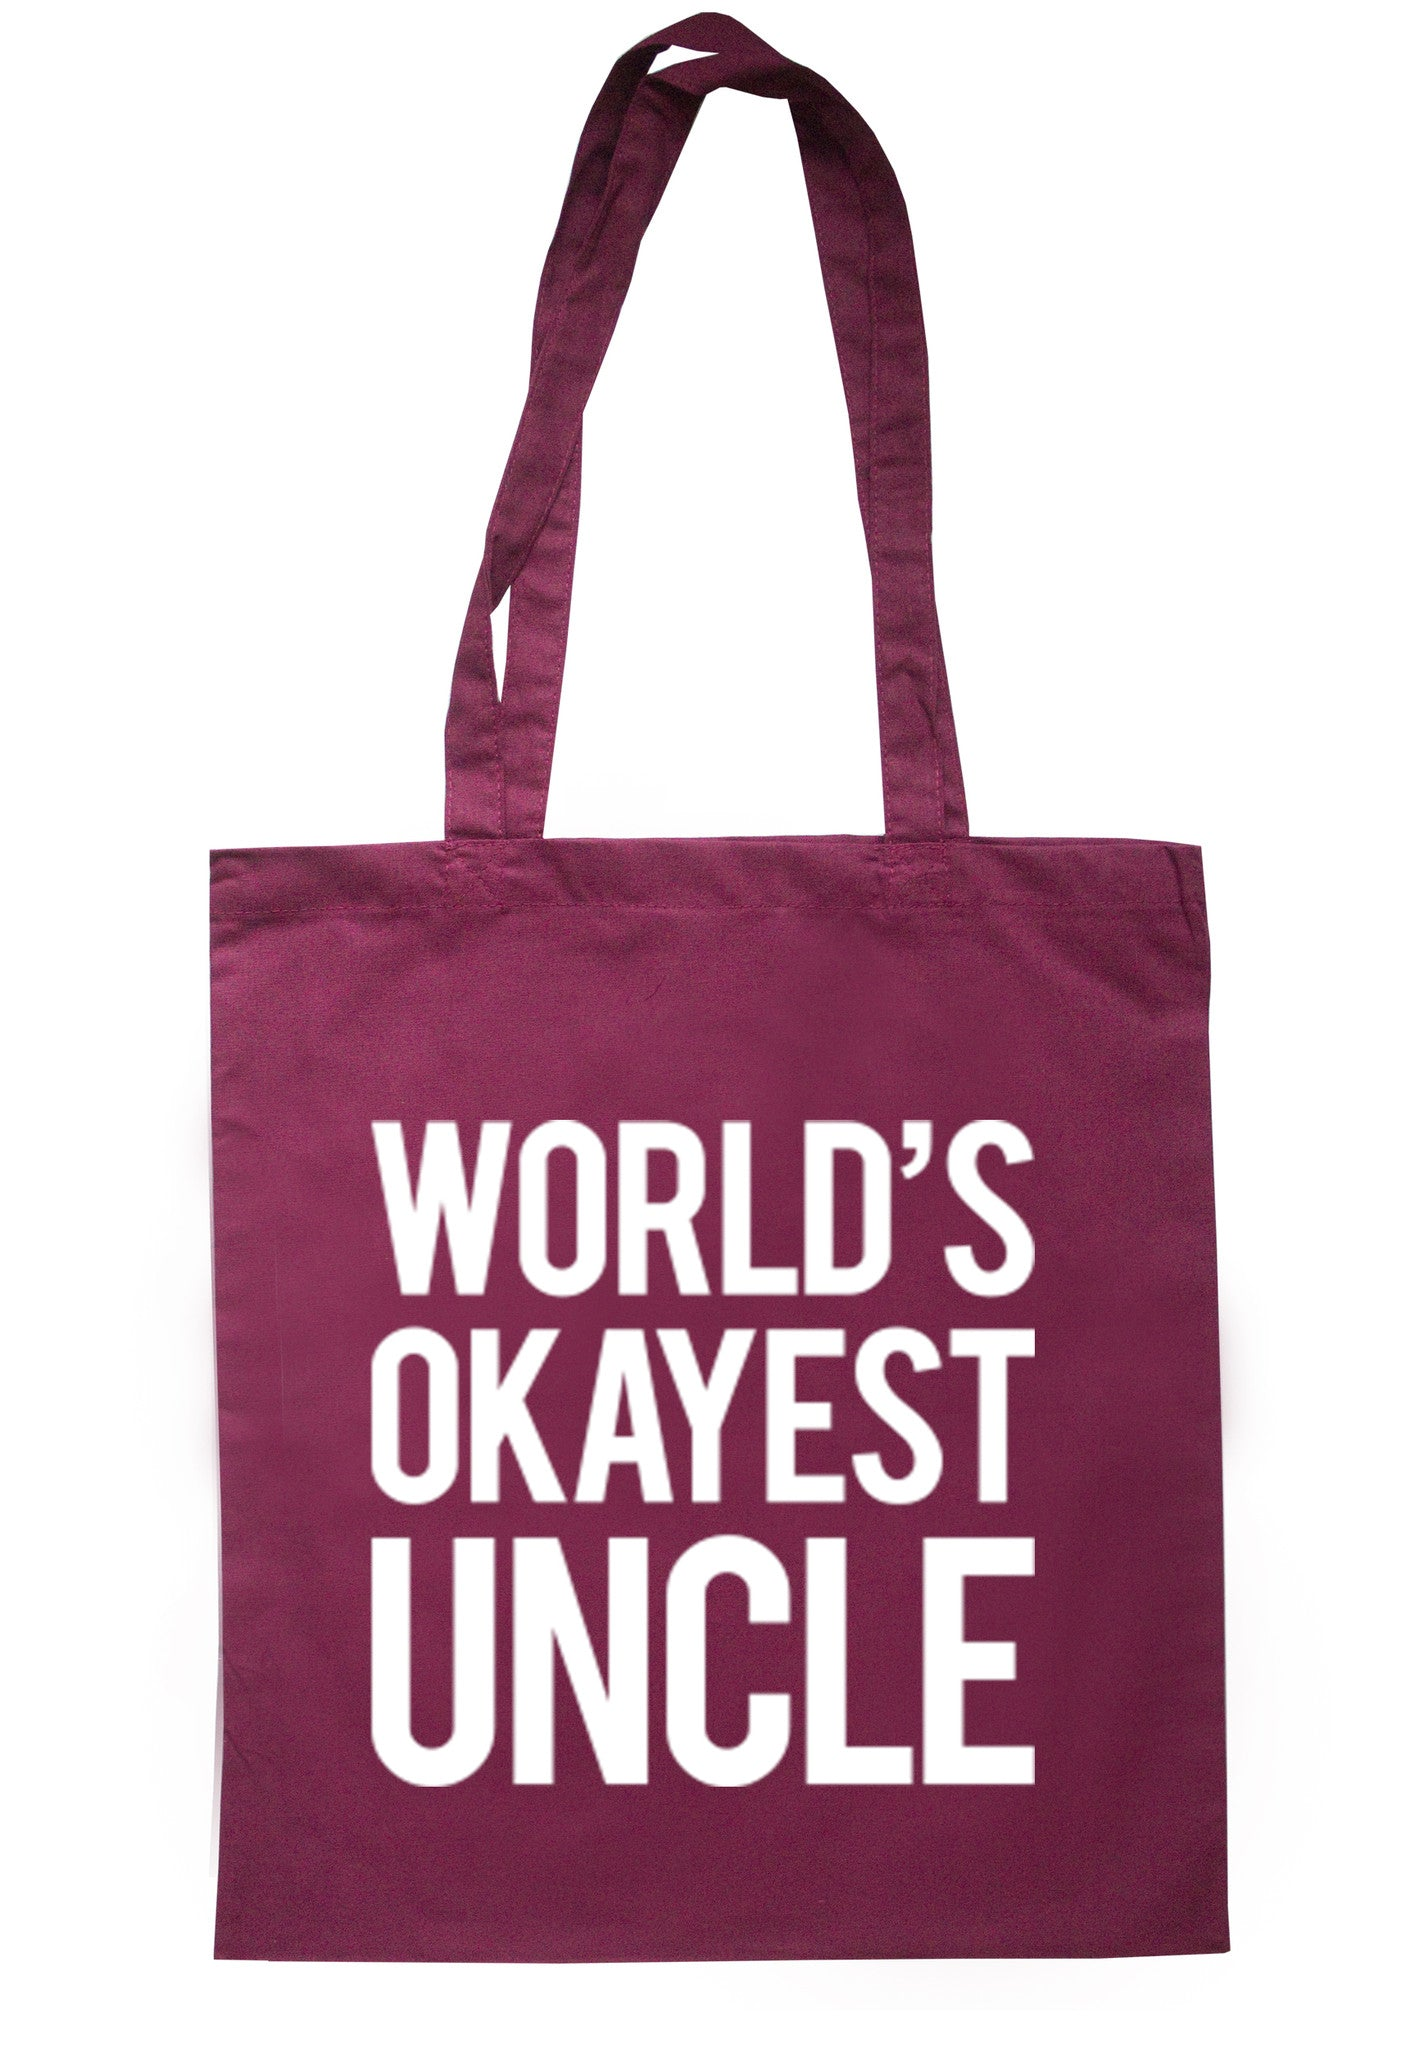 Worlds Okayest Uncle Tote Bag TB0034 - Illustrated Identity Ltd.